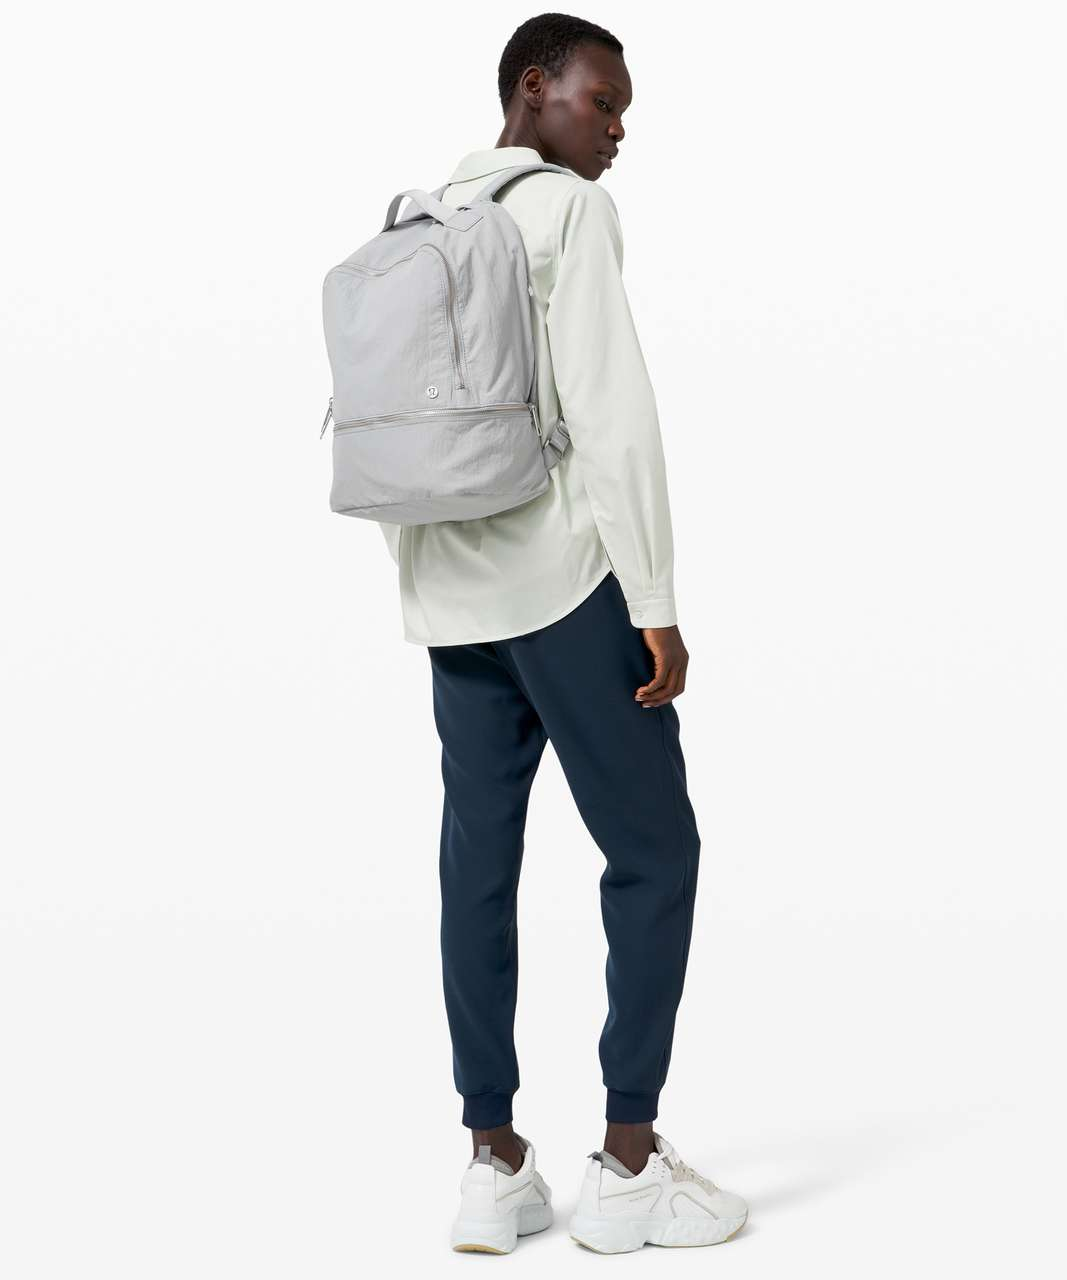 Lululemon City Adventurer Backpack *17L - Silver Drop